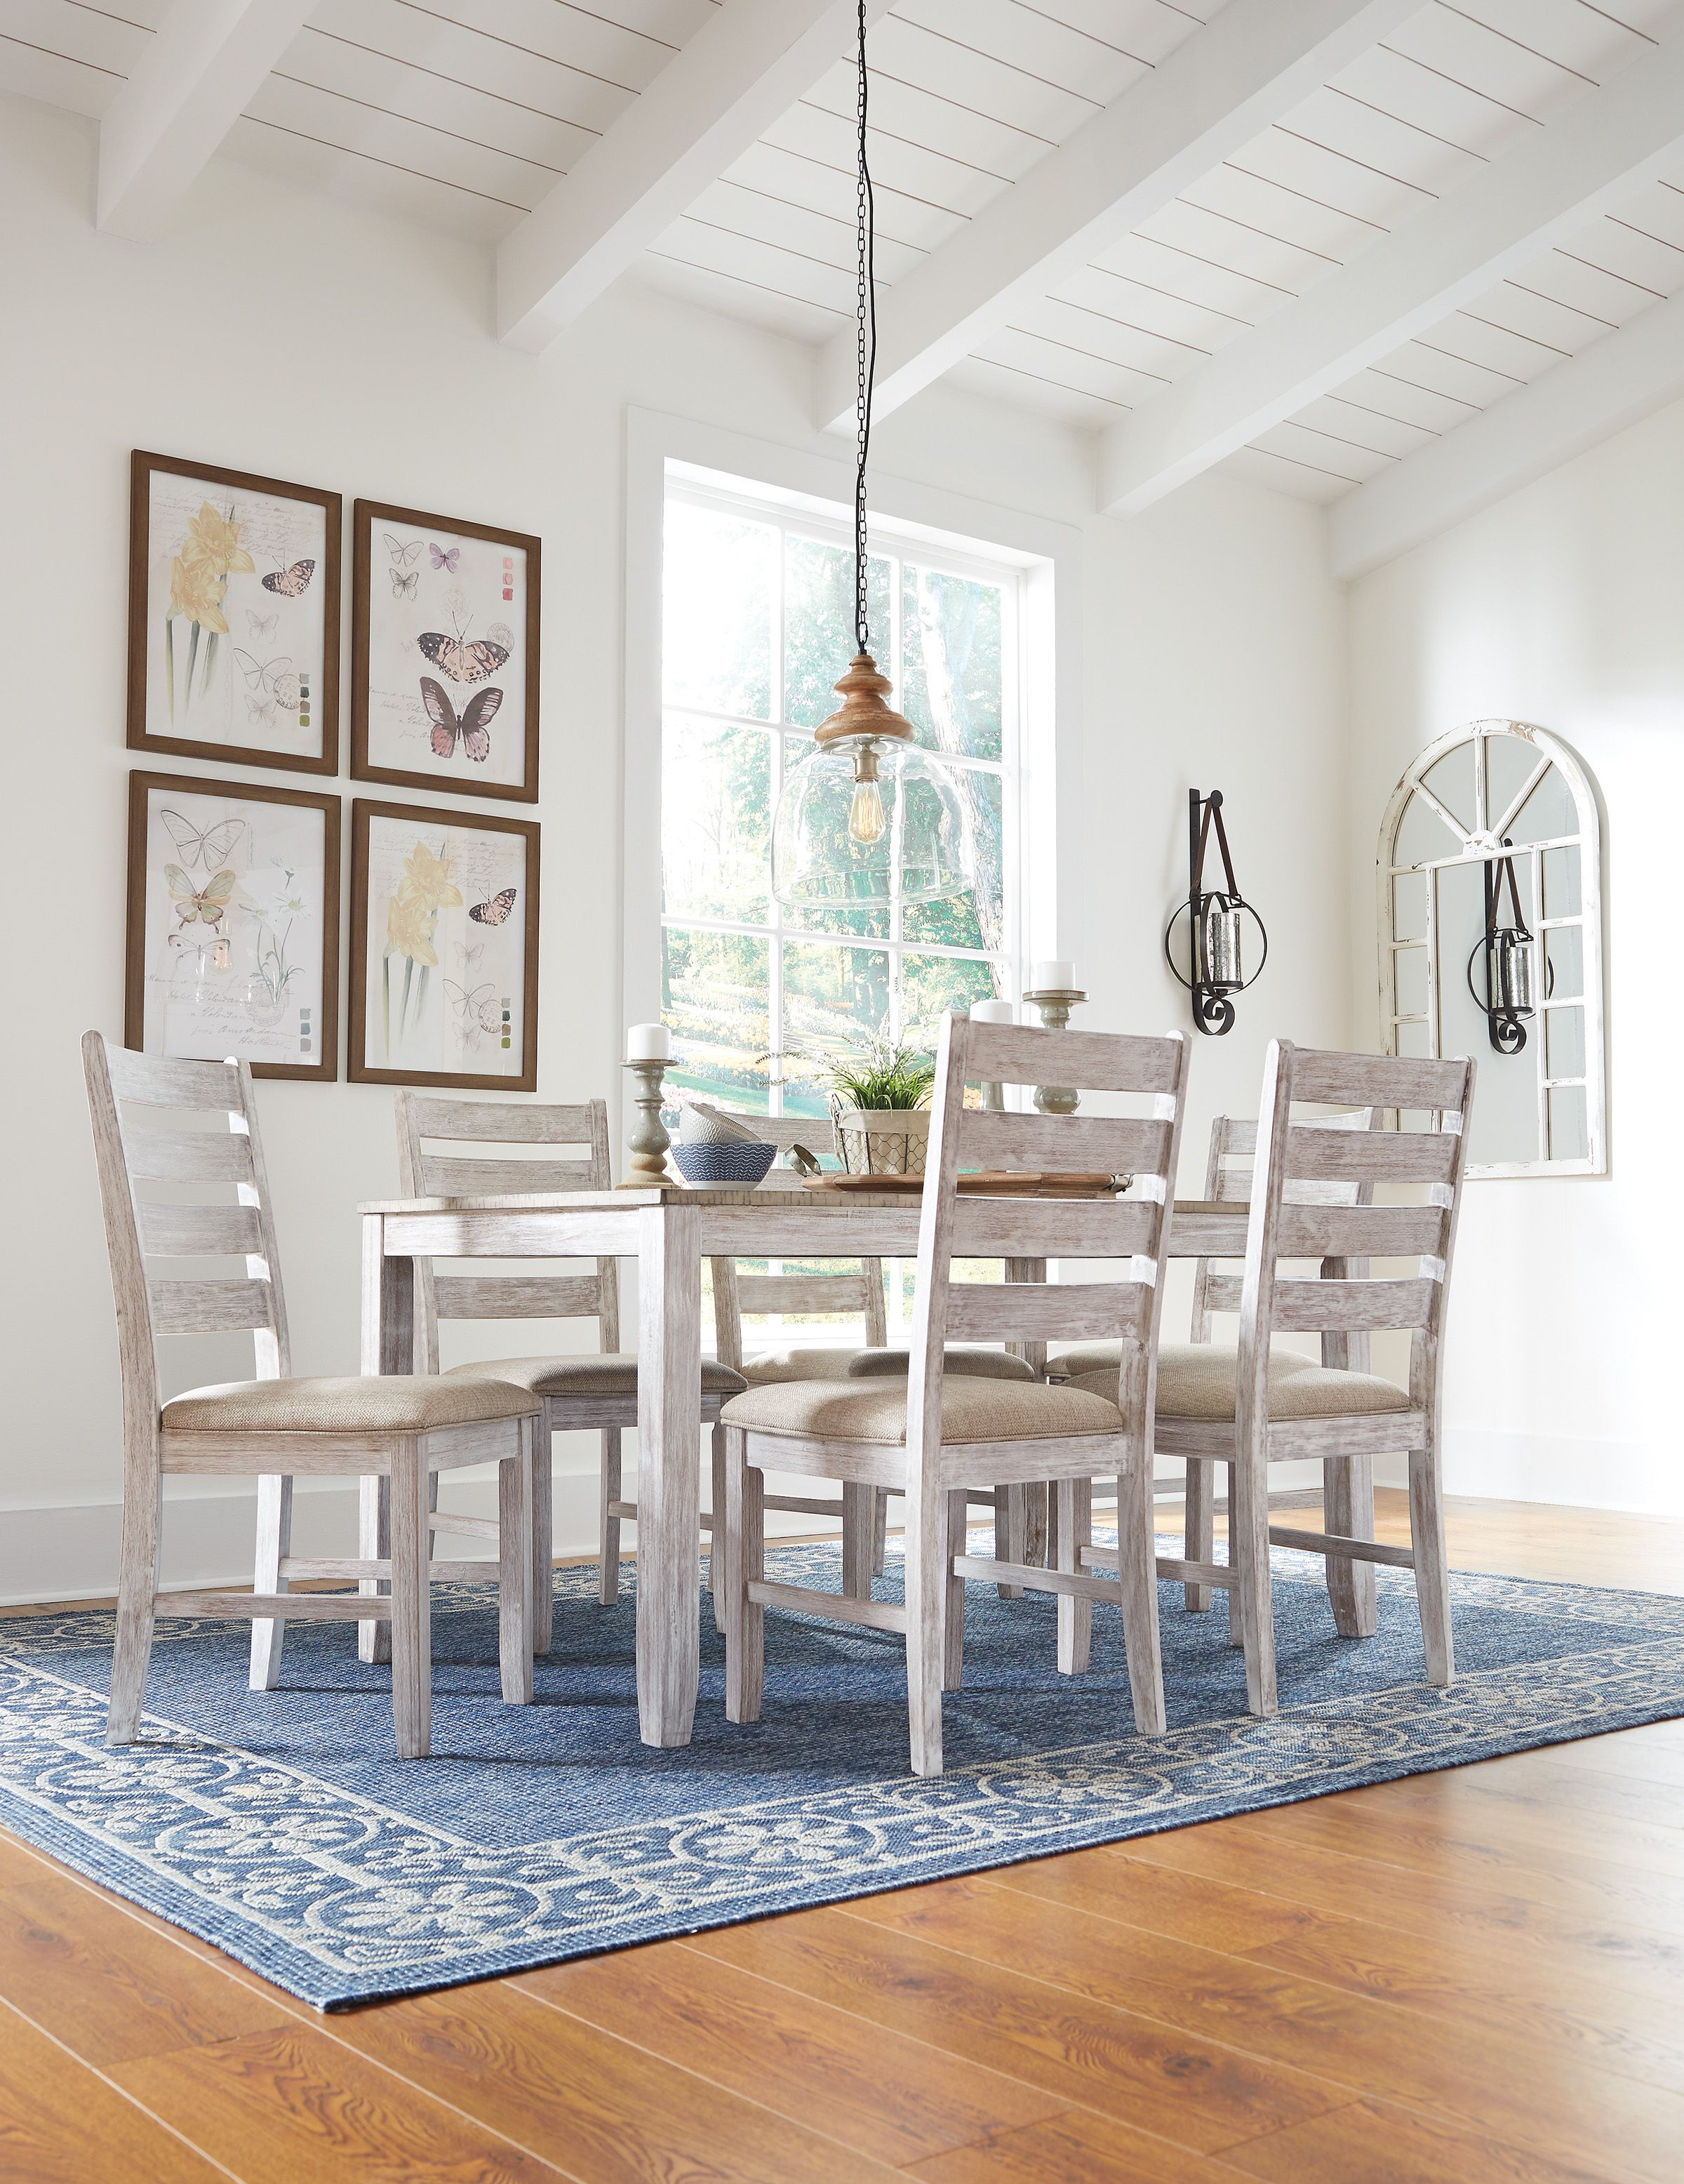 78339731c78fd Skempton 7 Piece Dining Room - Product Information Pull up a chair and dine  in the